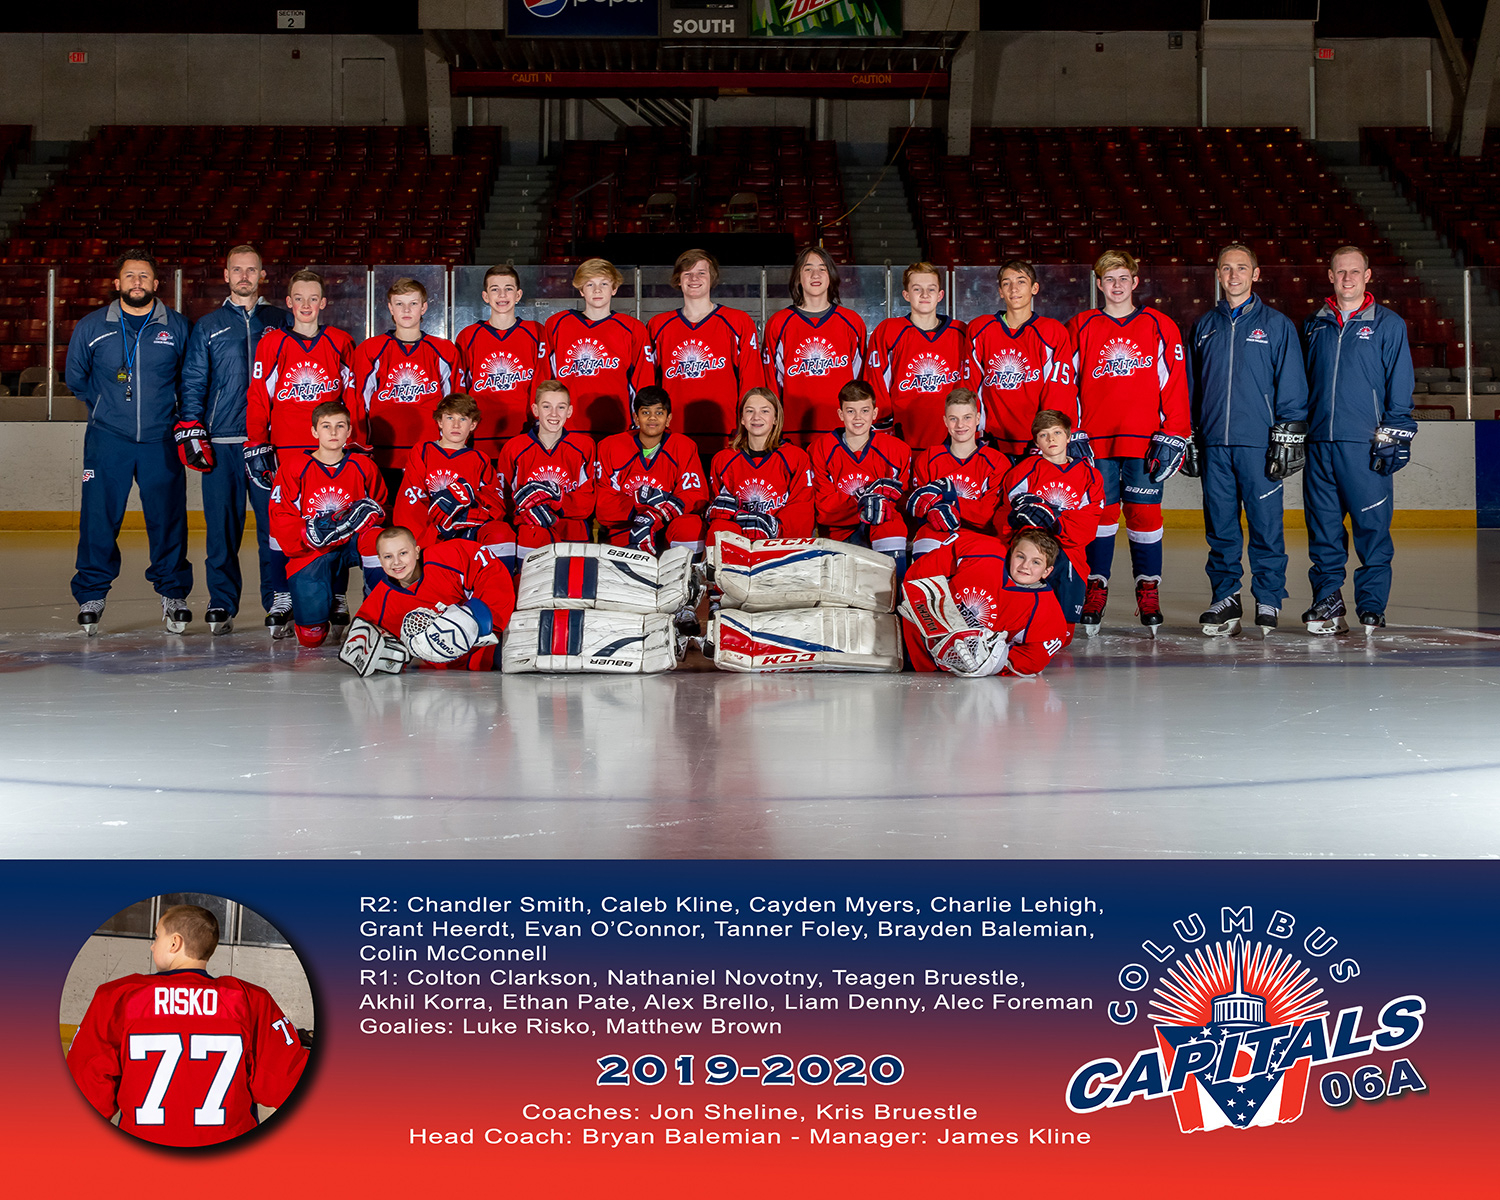 Custom Team Photo Package